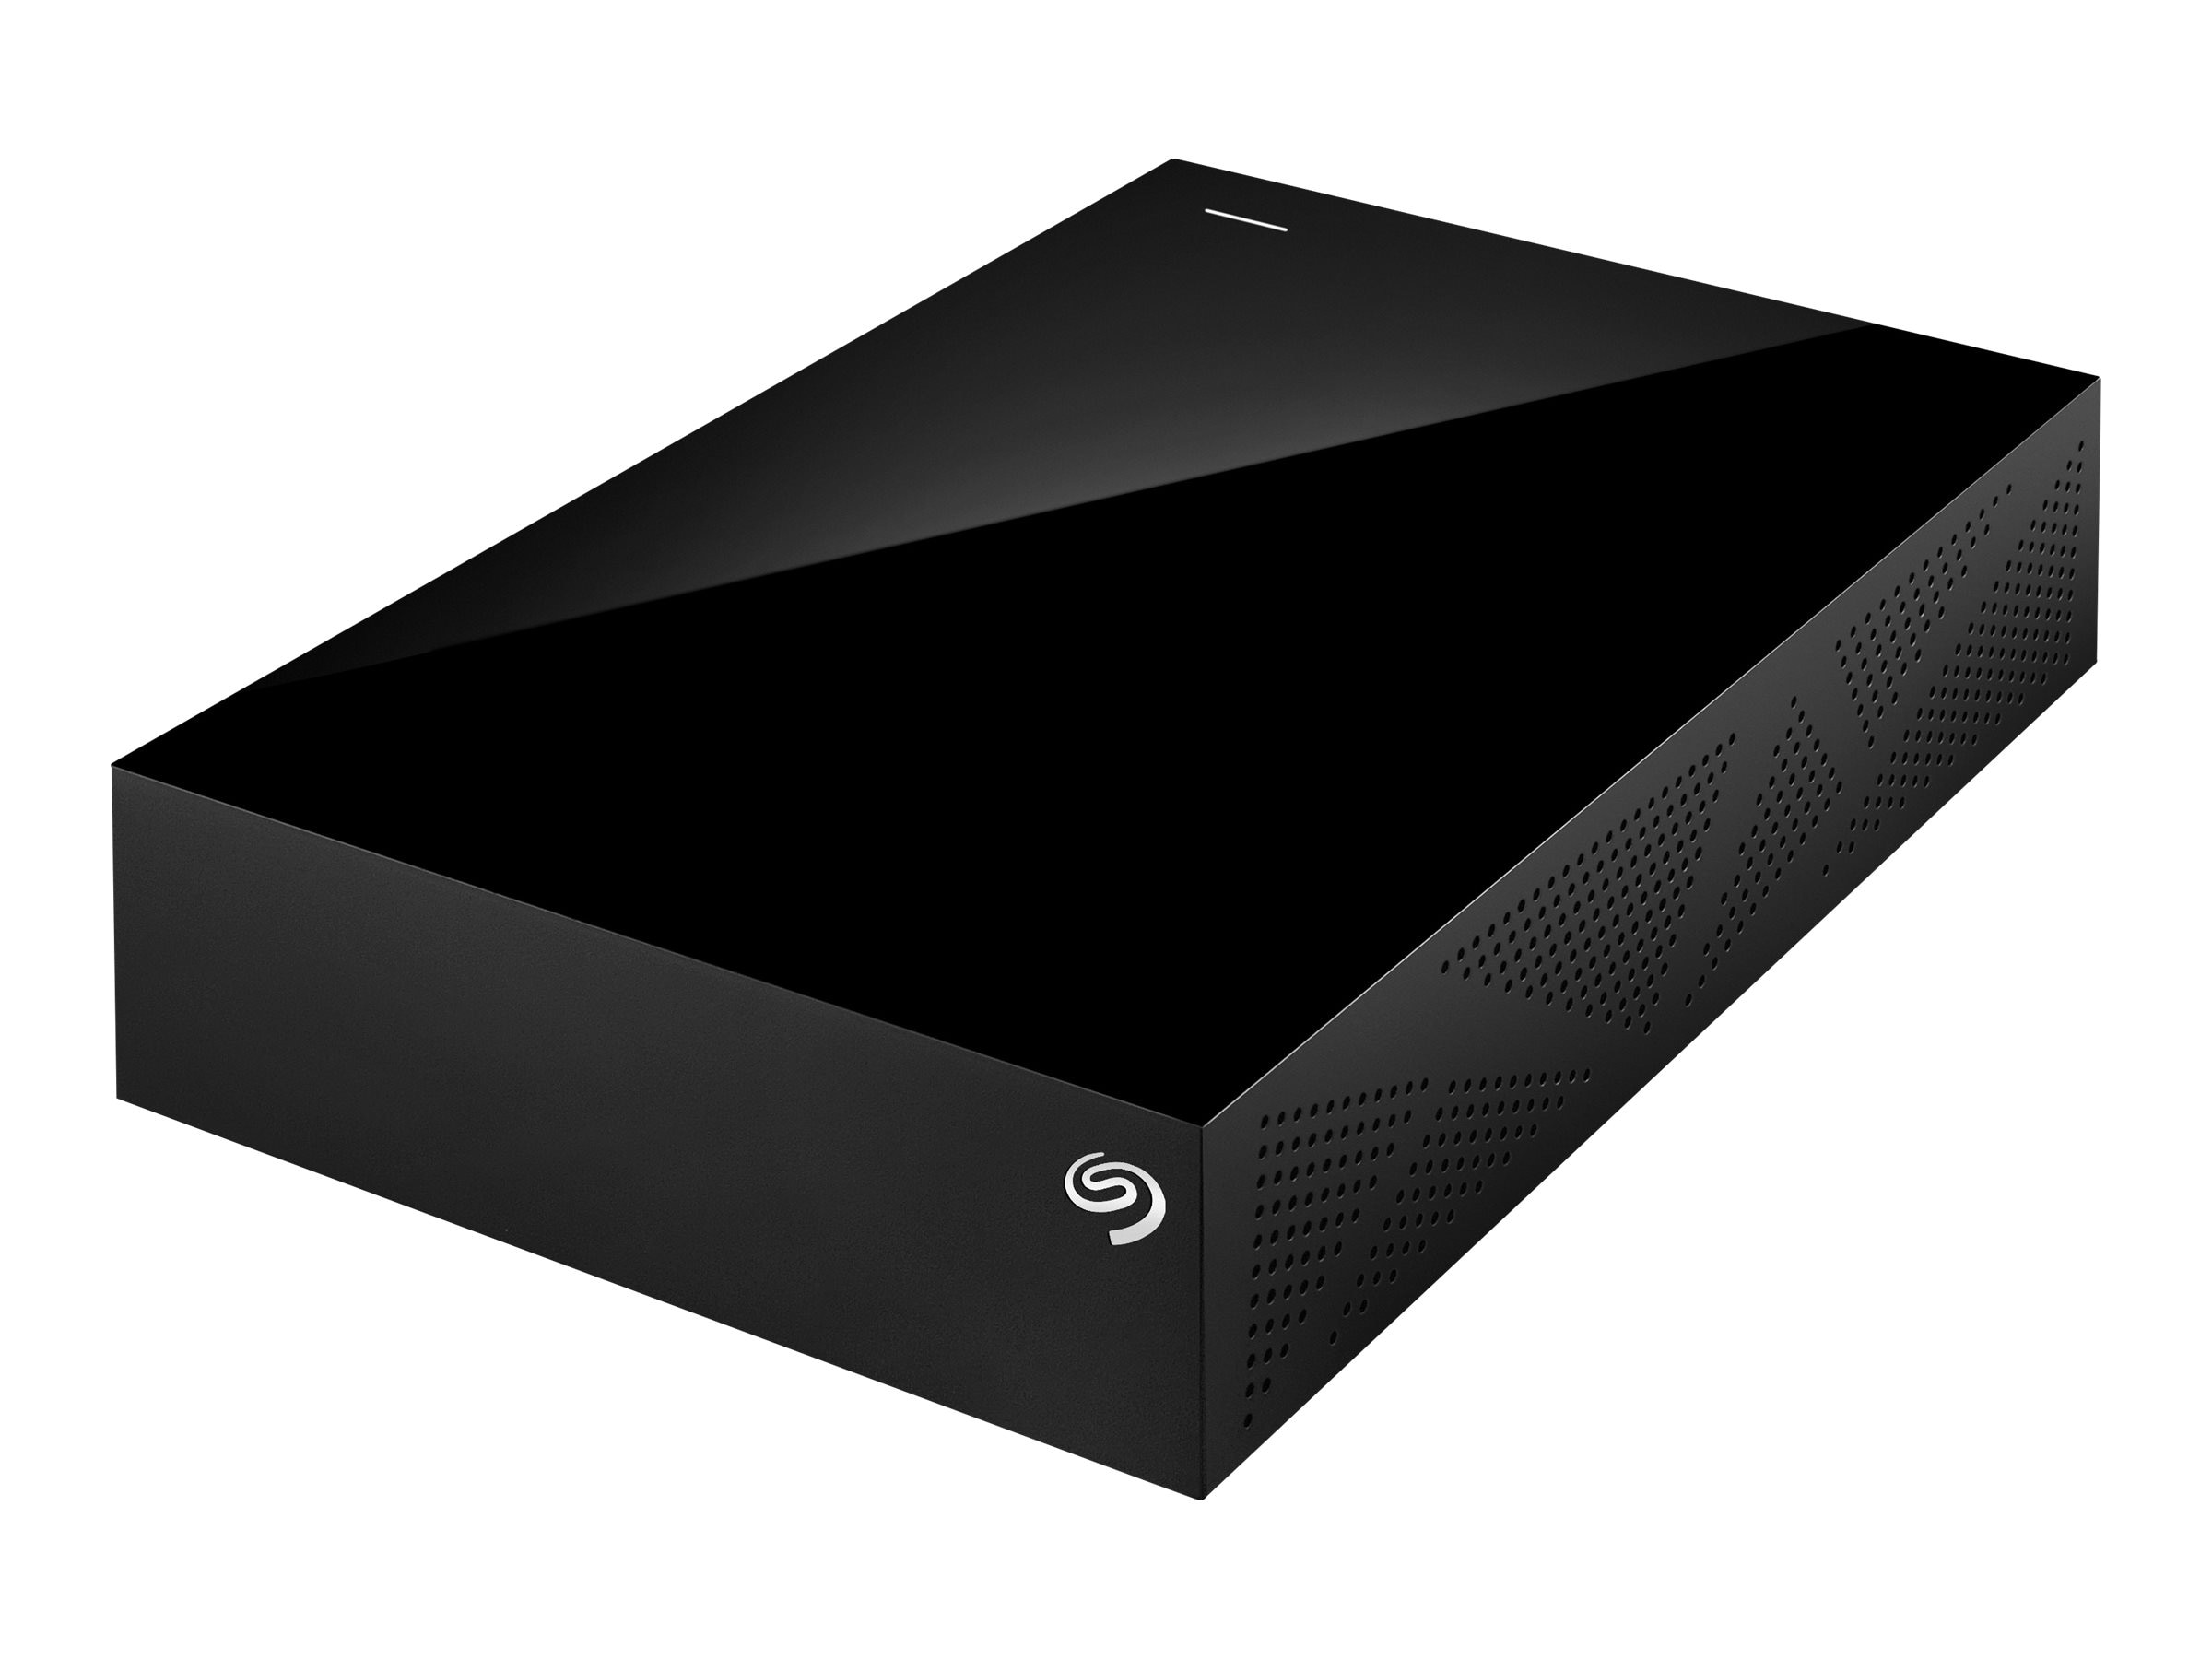 Seagate 5TB Backup Plus USB 3.0 3.5 Desktop Hard Drive - Tuxedo Black